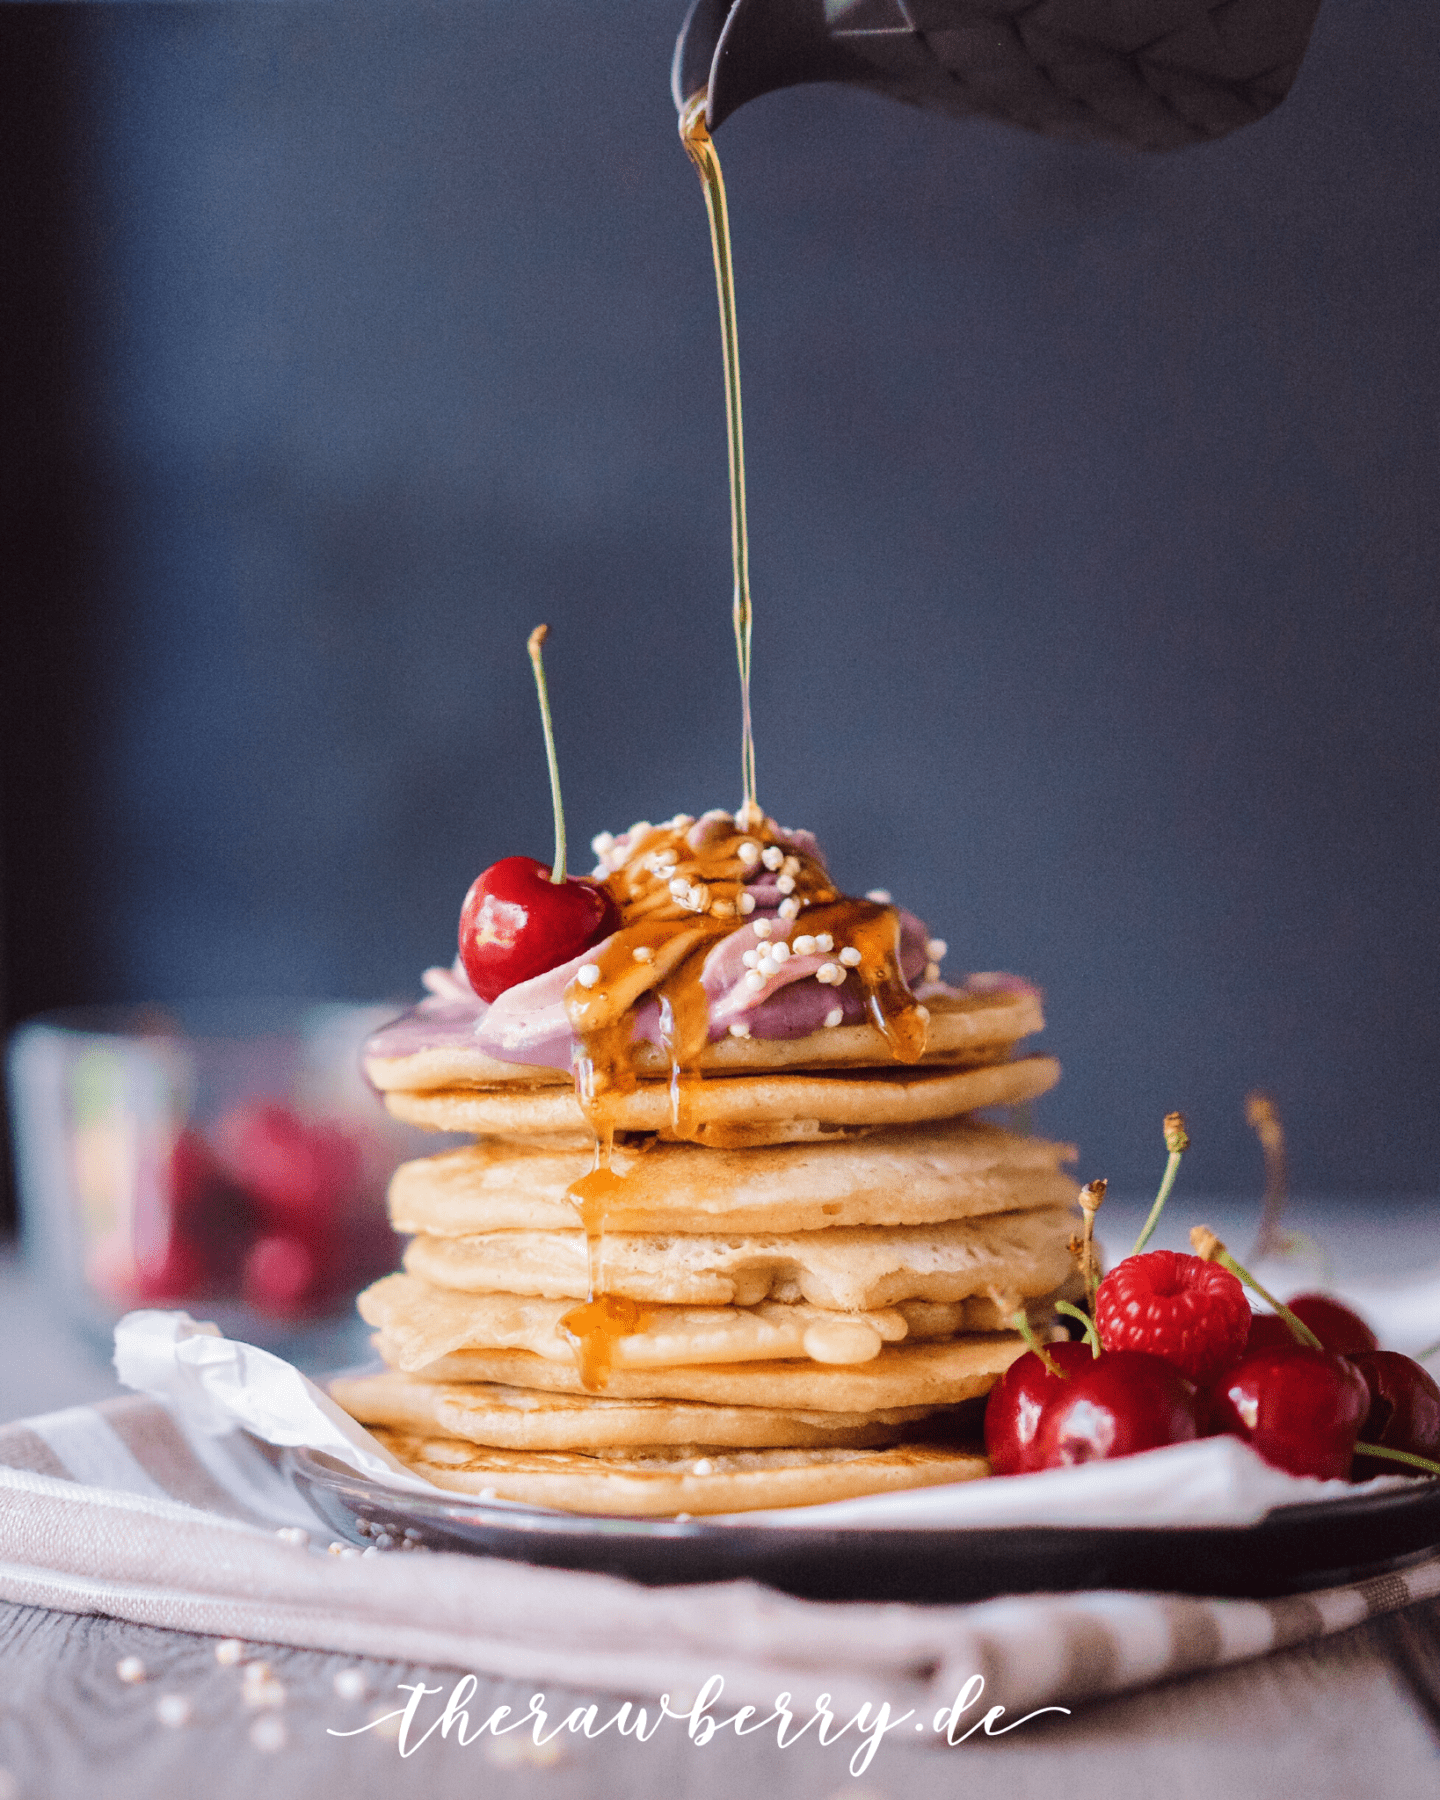 pancakes, fluffy, vegan, easy, recipe, dairy free, no sugar, healthy, food, breakfast, dessert, sweet, foodie, photography, delicious